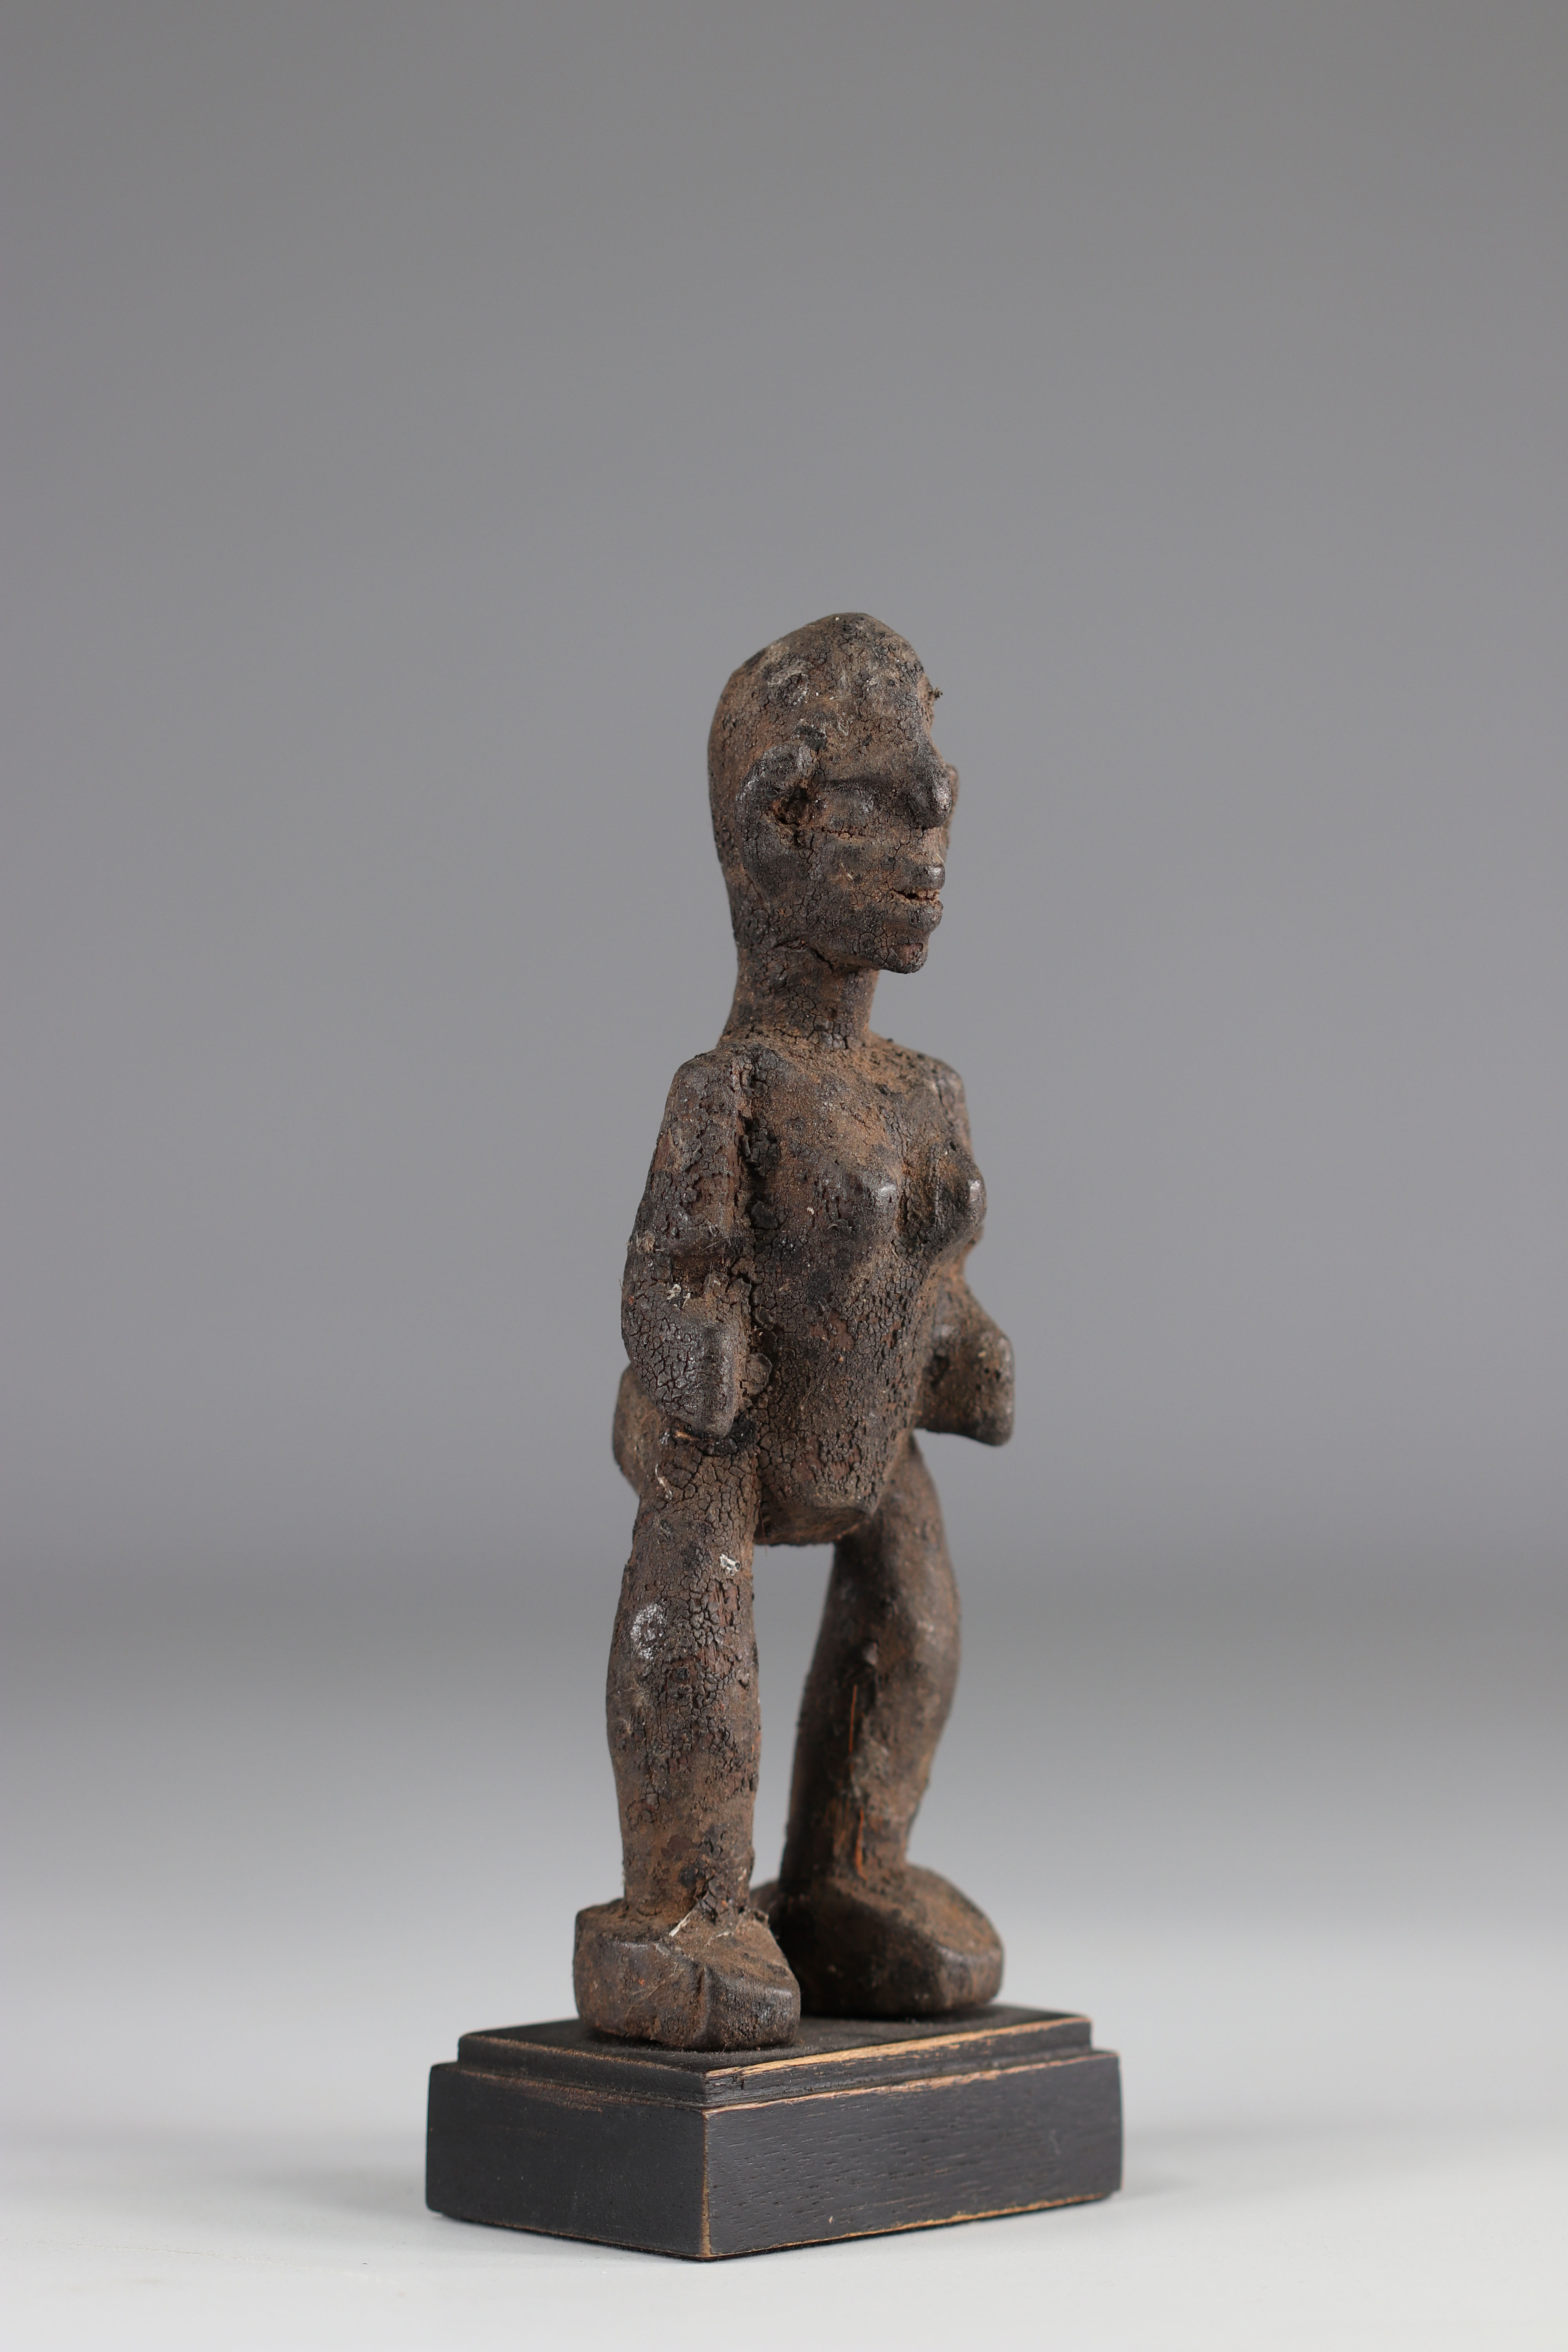 Kassena-Rare statuette and old Kassena statuette (Burkina Faso). Dense wood covered with a thick sac - Image 2 of 4